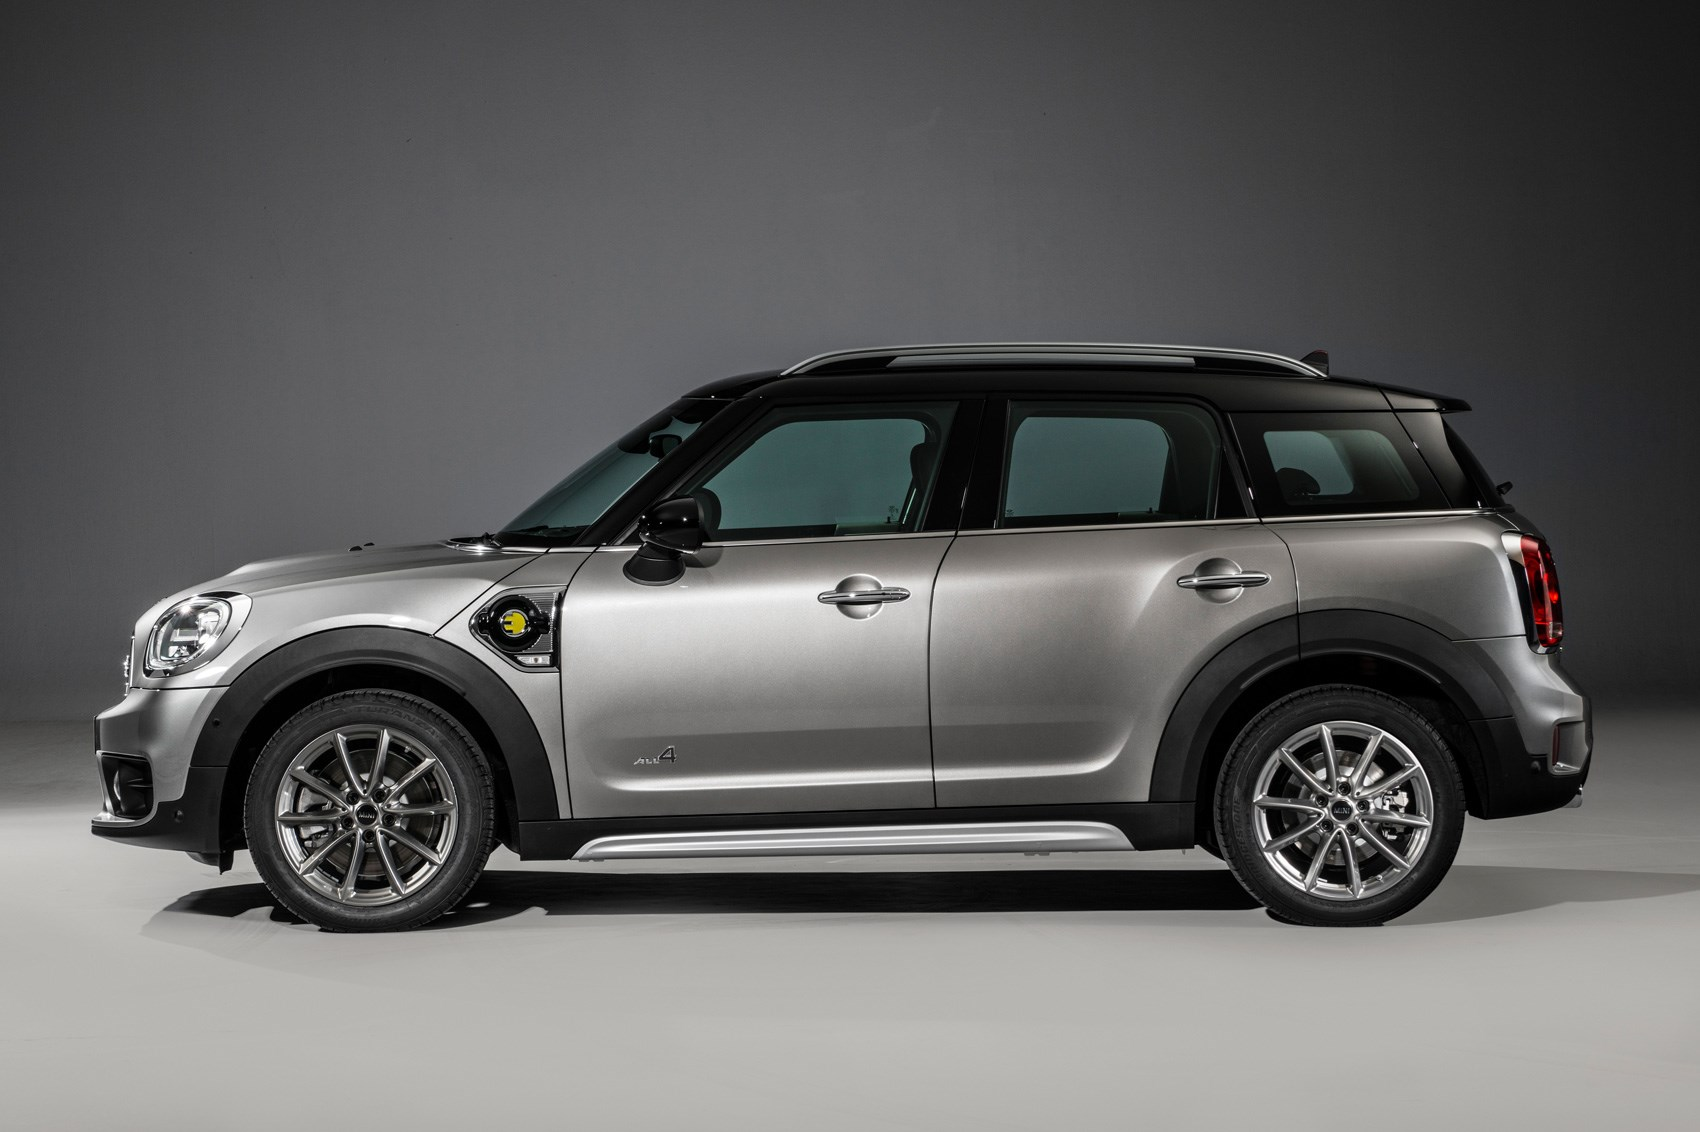 new 2017 mini countryman is the biggest mini ever by car magazine. Black Bedroom Furniture Sets. Home Design Ideas